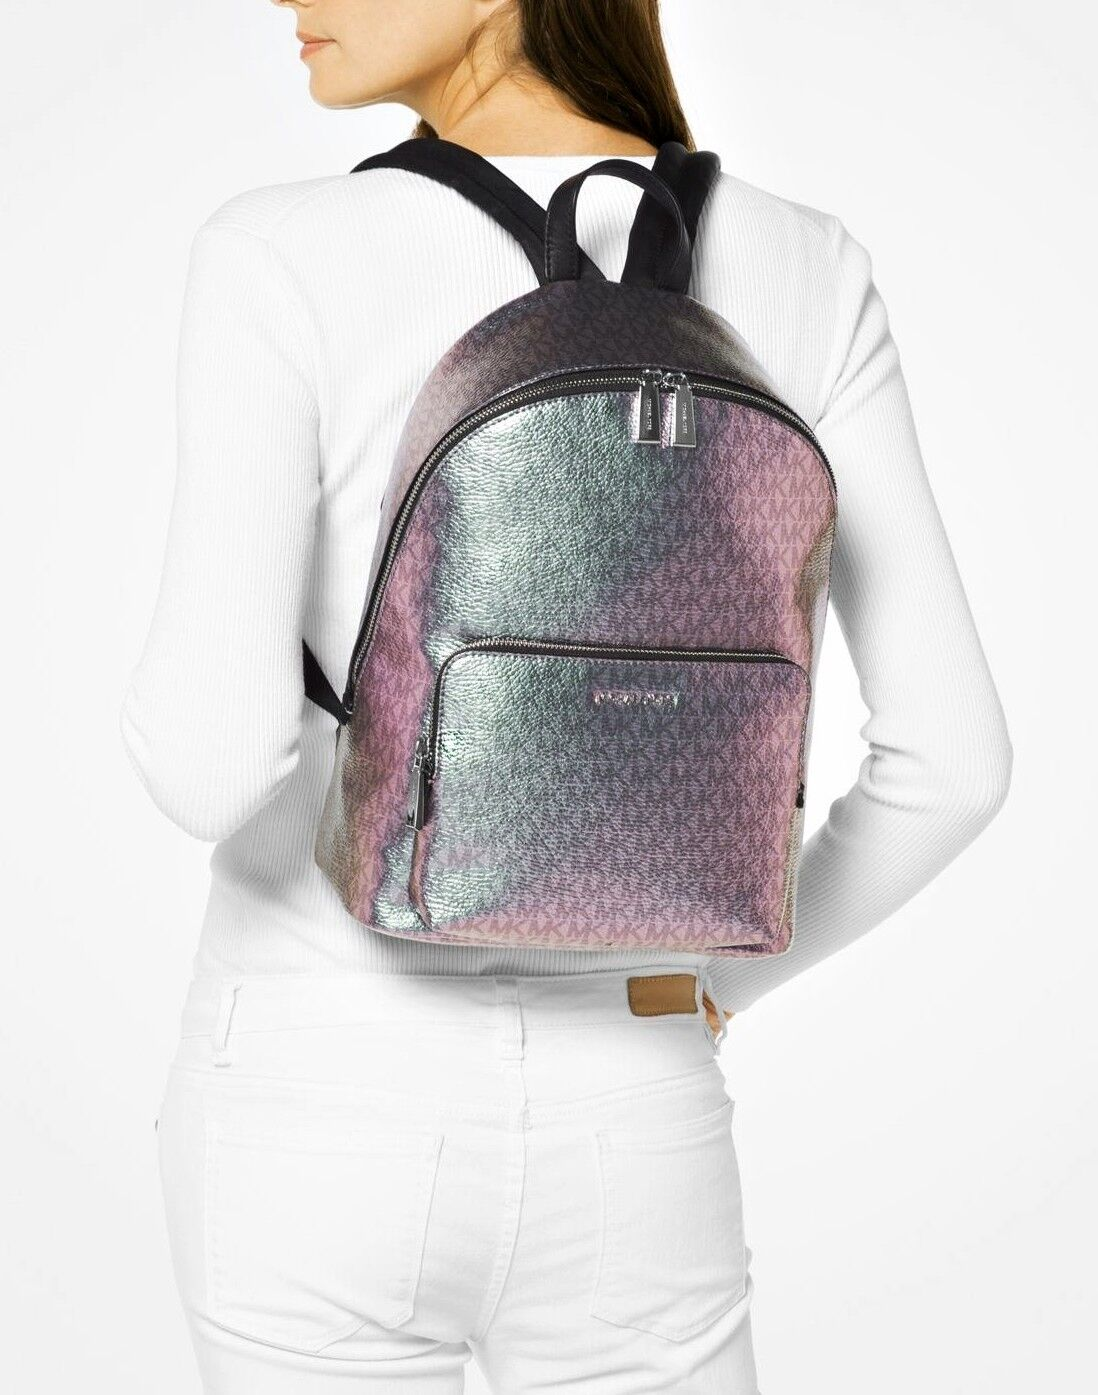 95b9ef67848cef Michael Kors MK Wythe Large Backpack Iridescent Metallic 328 for ...